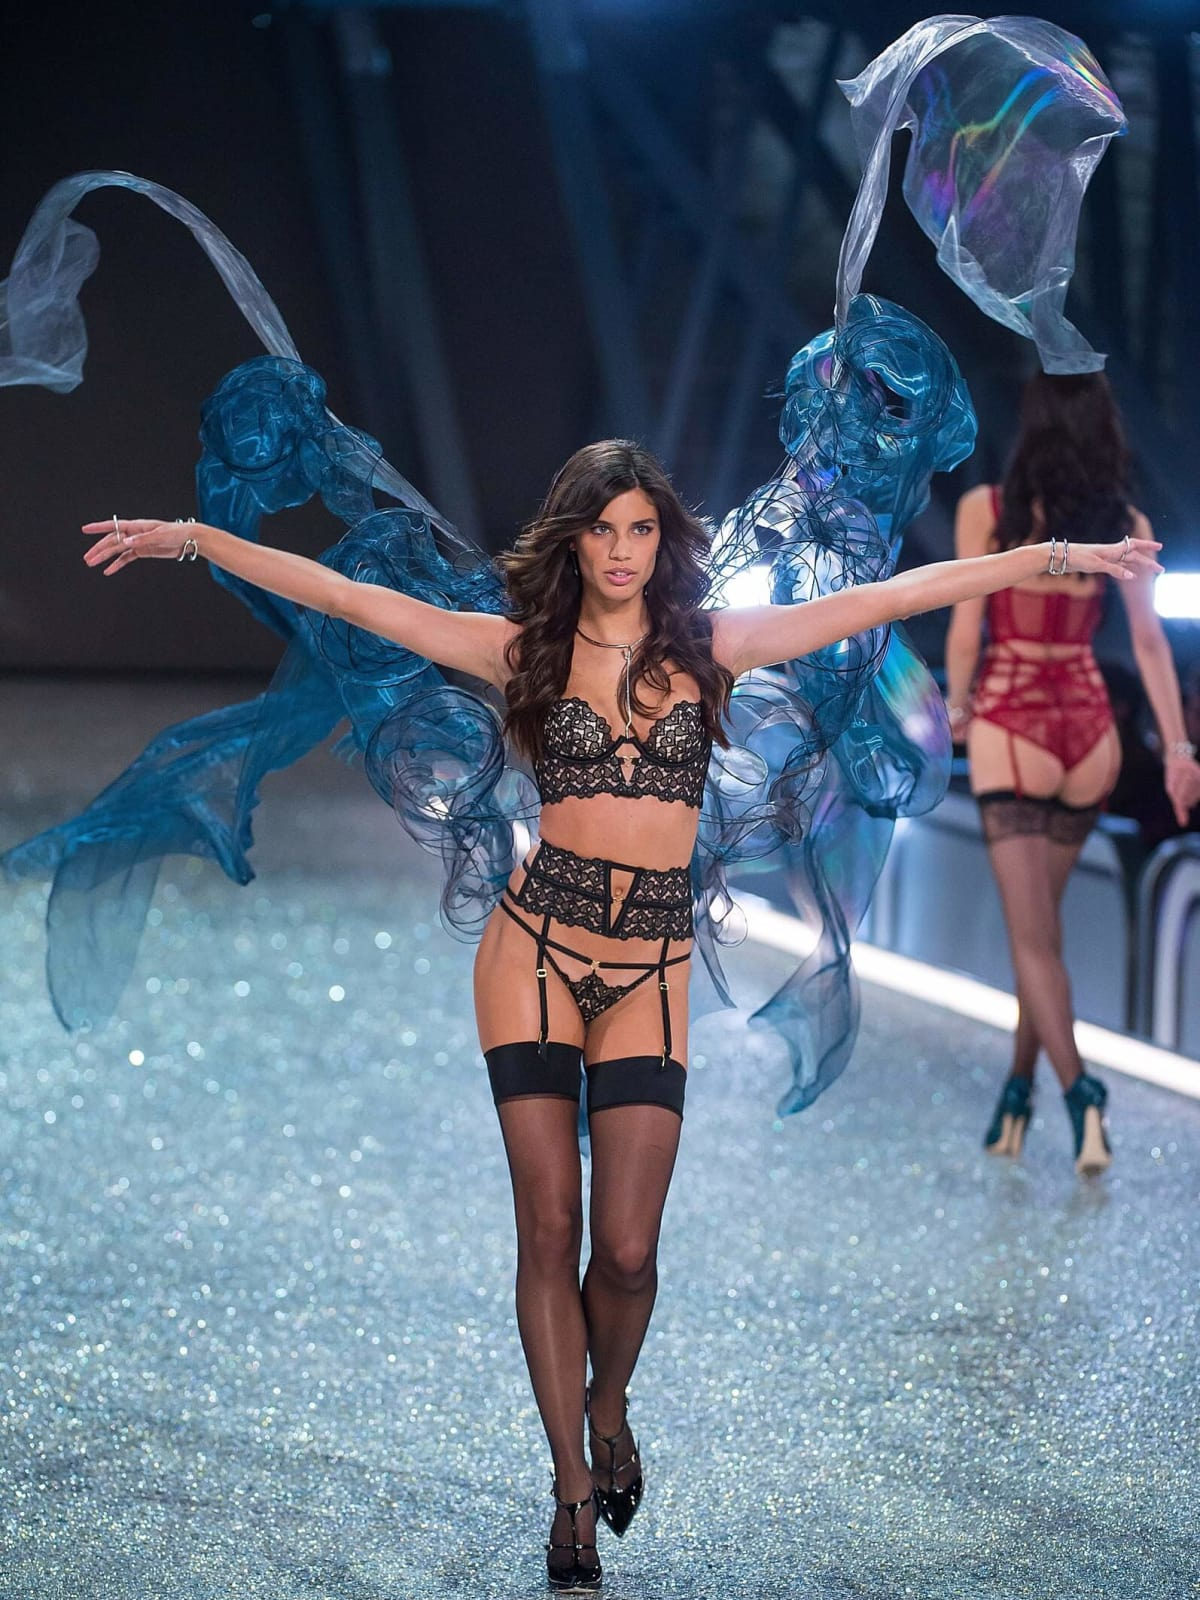 Sara Sampaio in Victoria's Secret fashion show